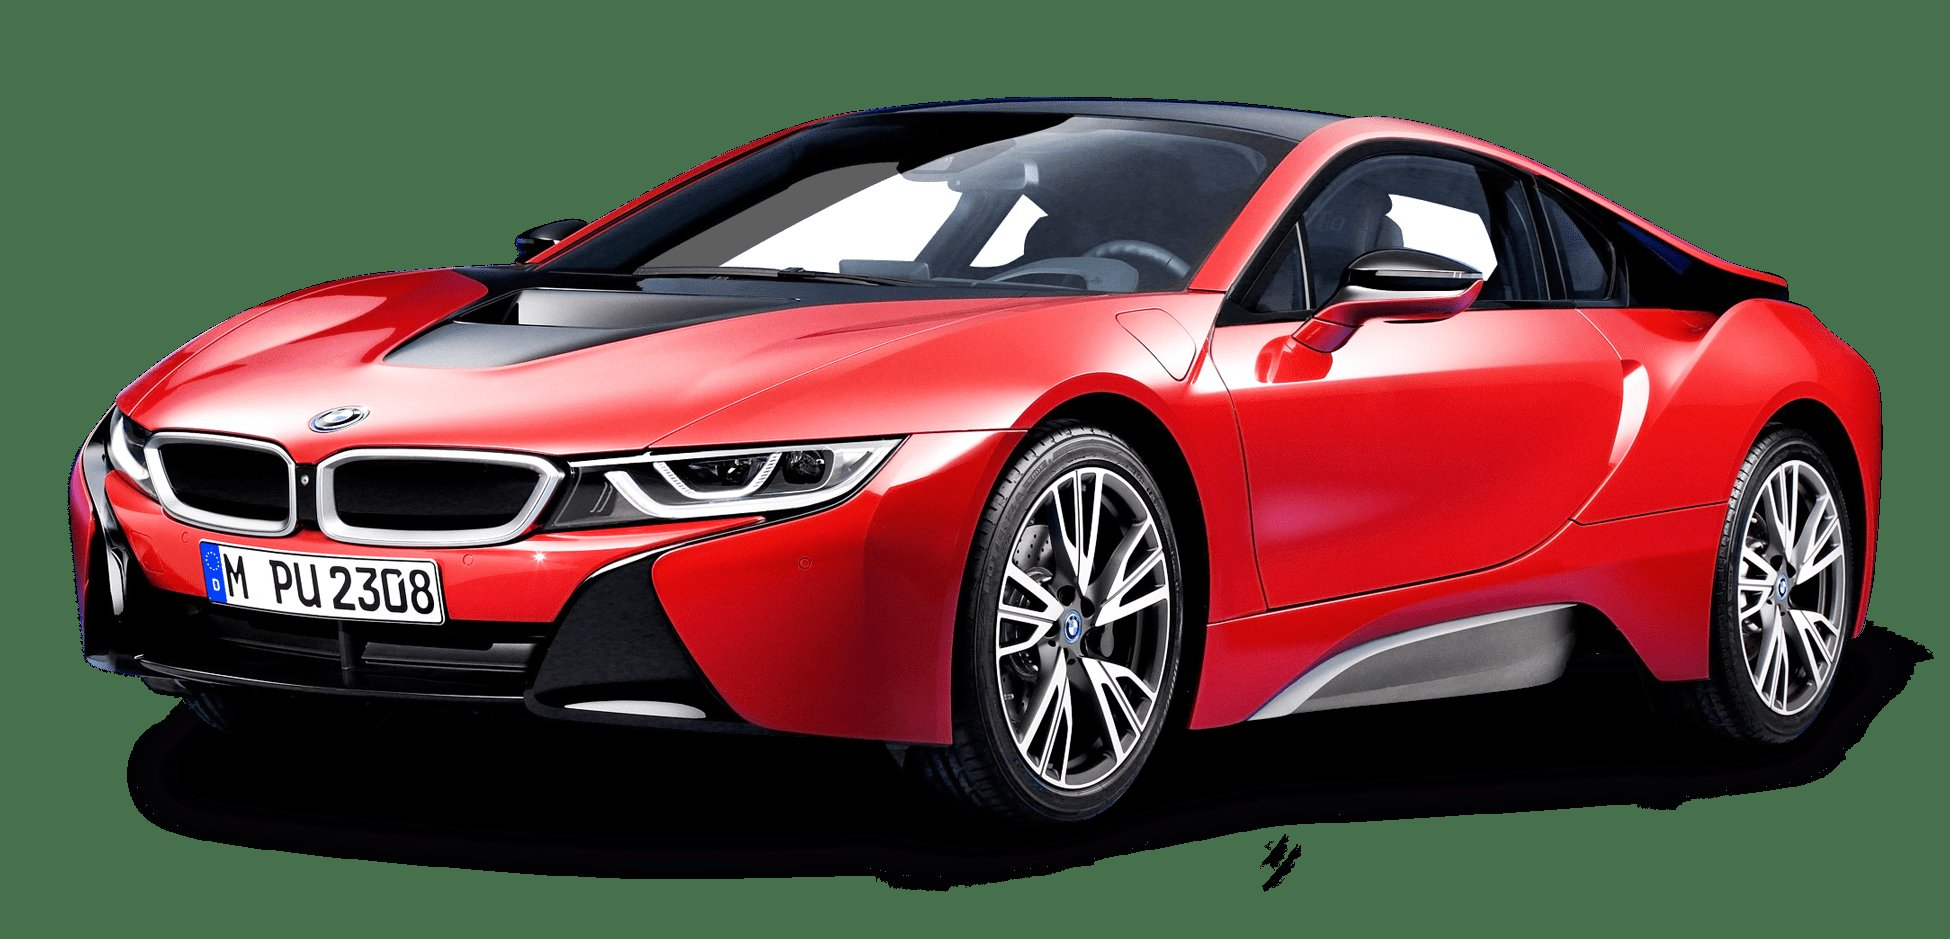 Latest Bmw I8 Protonic Red Car Png Image Purepng Free Free Download